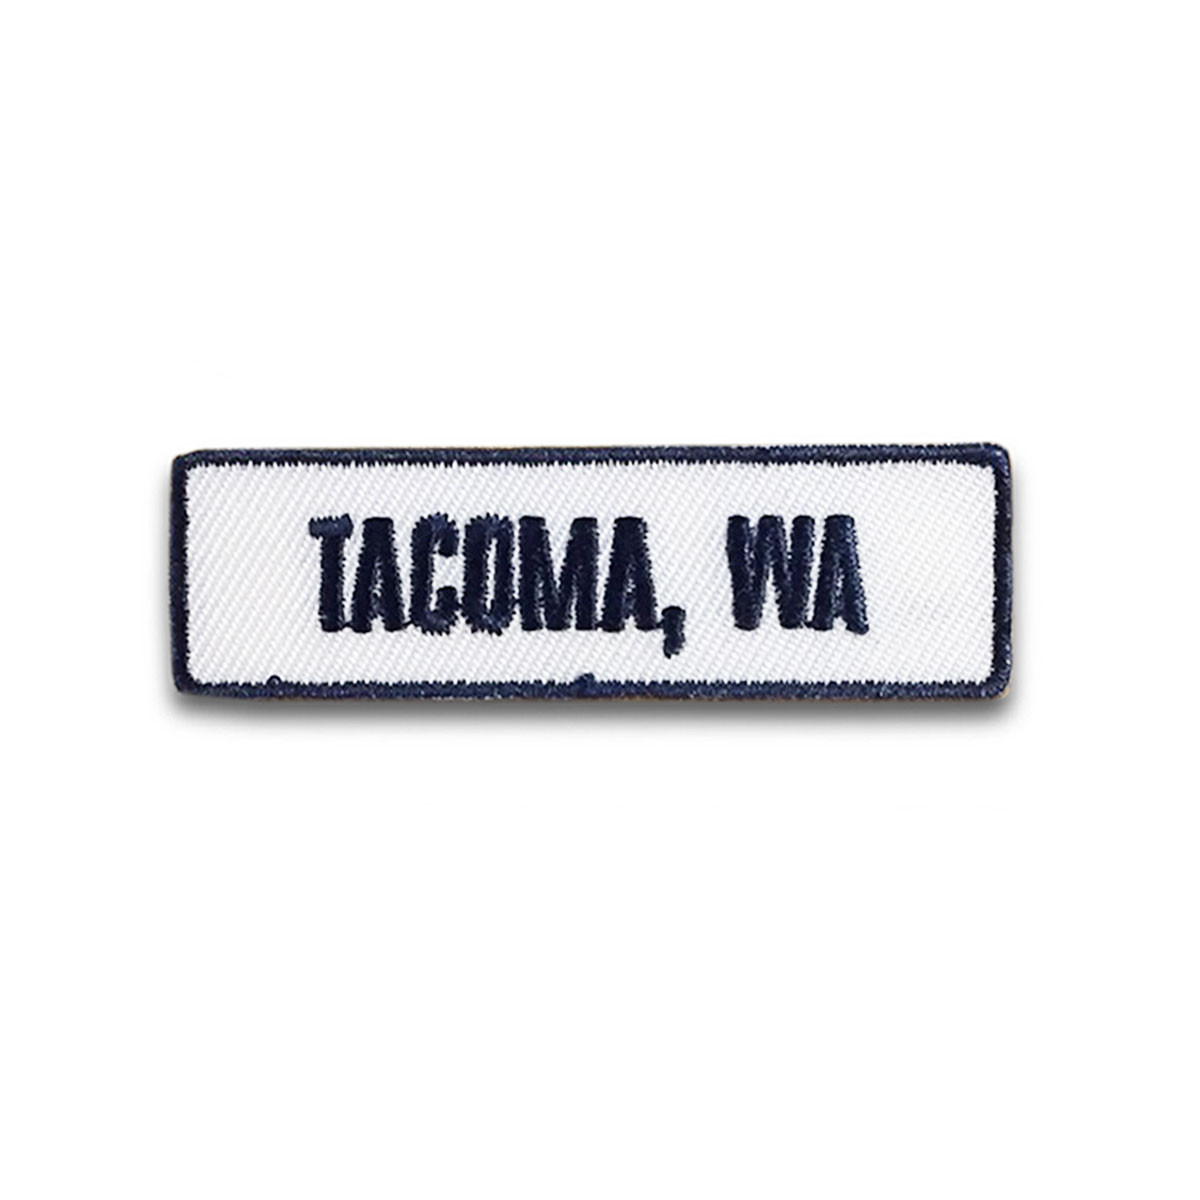 Tacoma, WA Rocker Patch